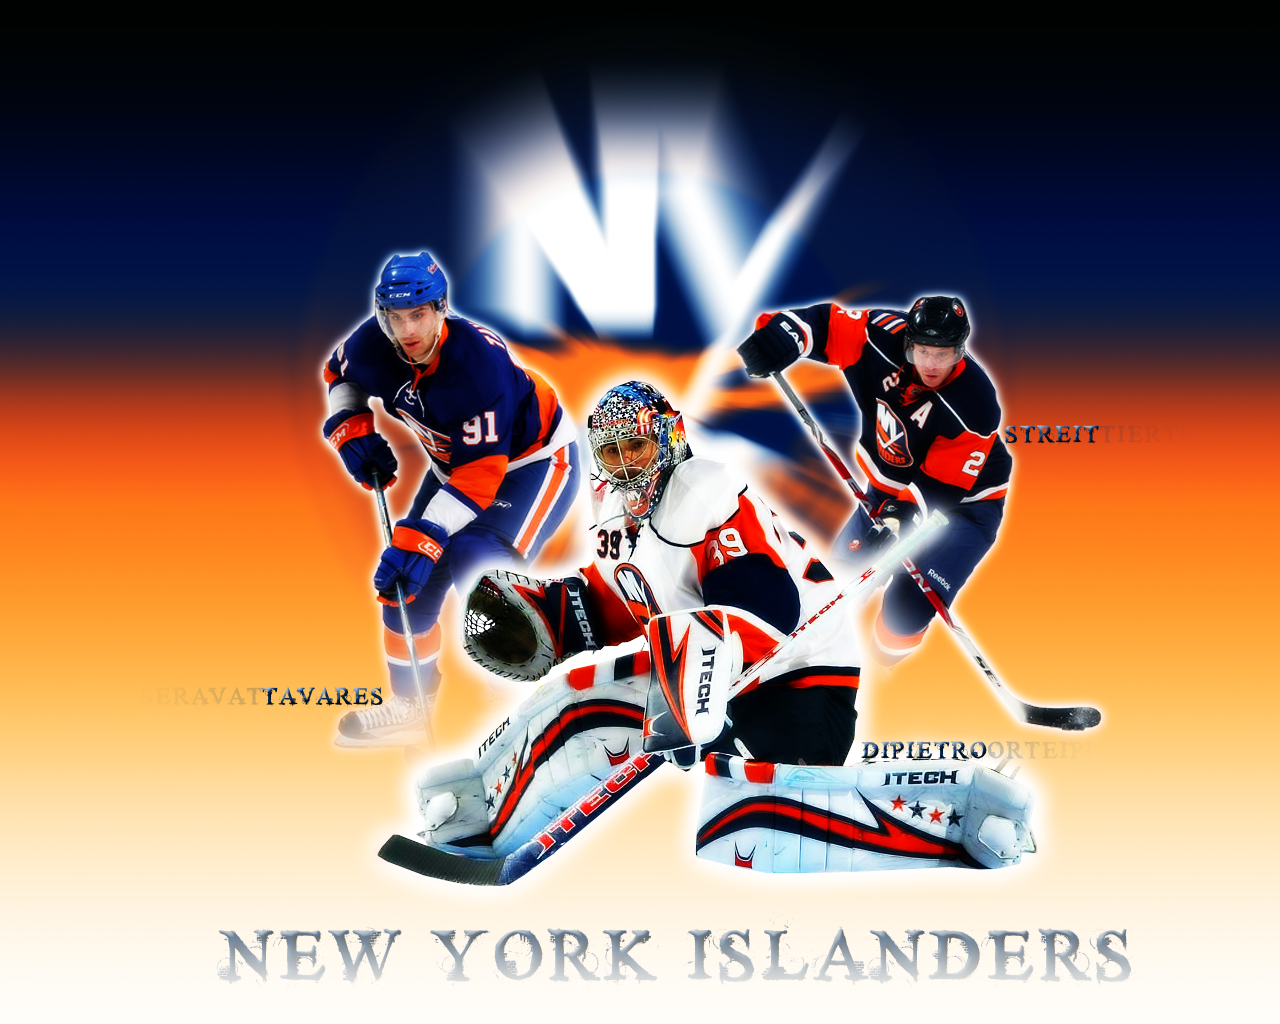 New York Islanders Wallpaper New york islanders wallpaper 1280x1024